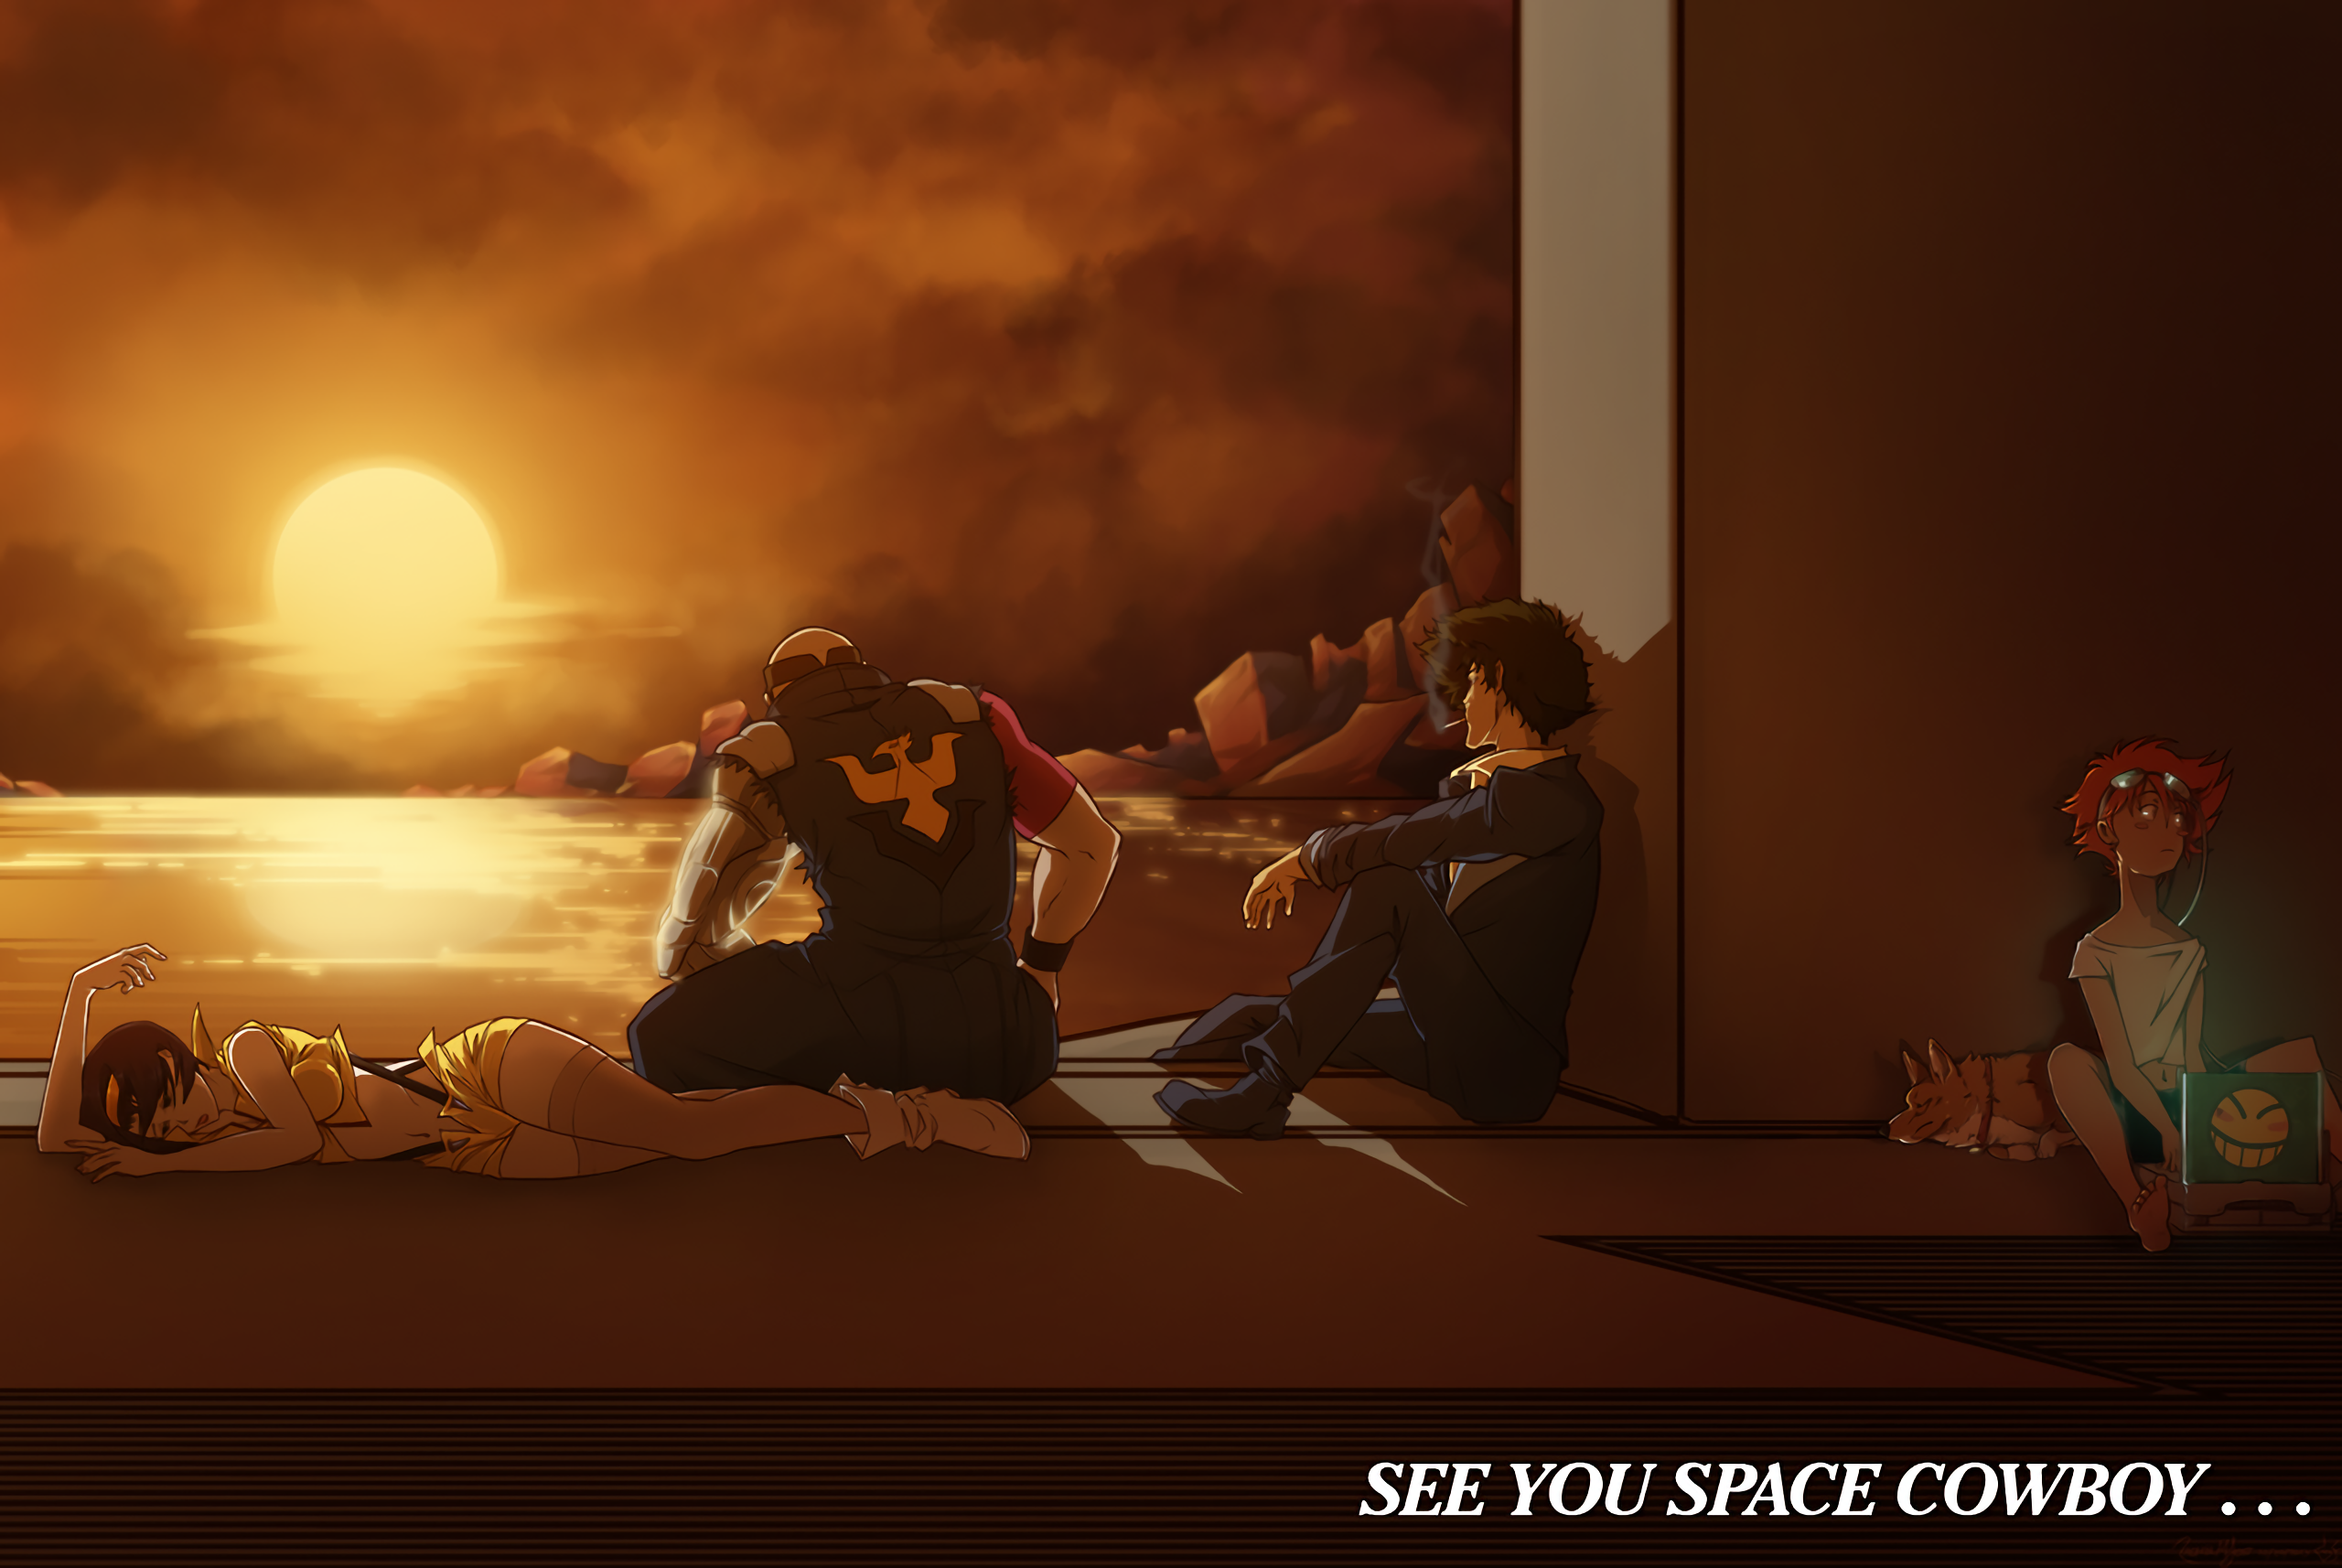 SEE YOU SPACE COWBOY·.